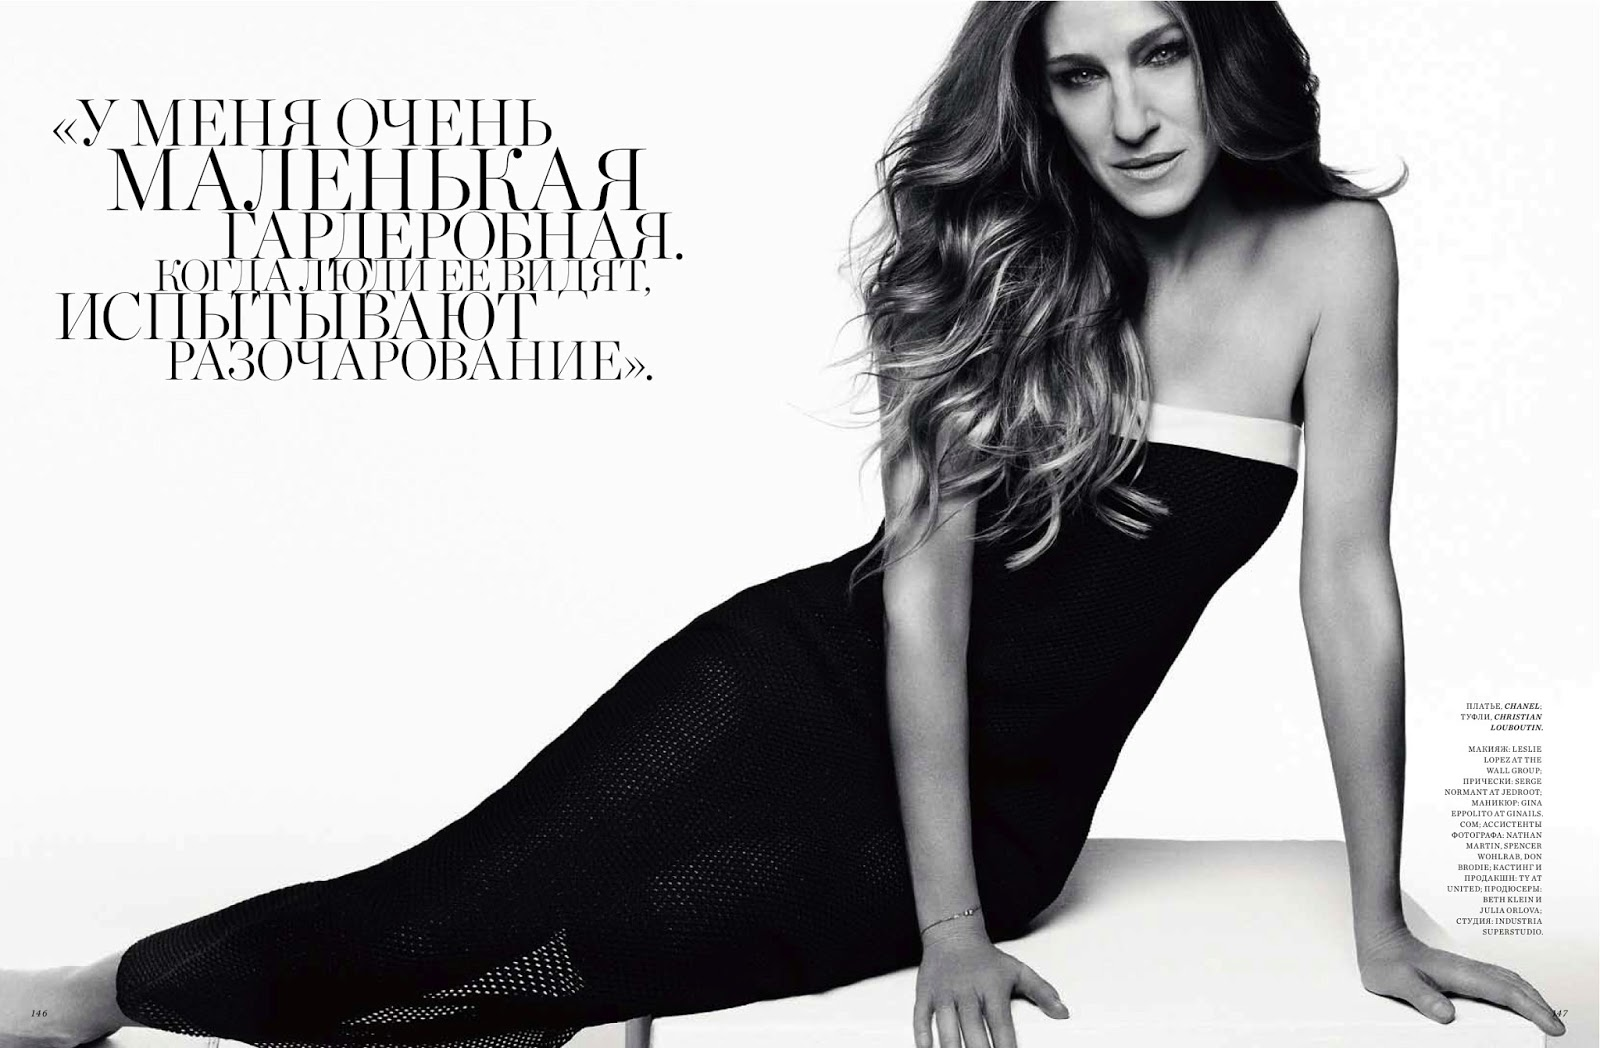 Sarah Jessica Parker Poses in Harper's Bazaar Russia June 2013 Cover Shoot by Simon Upton